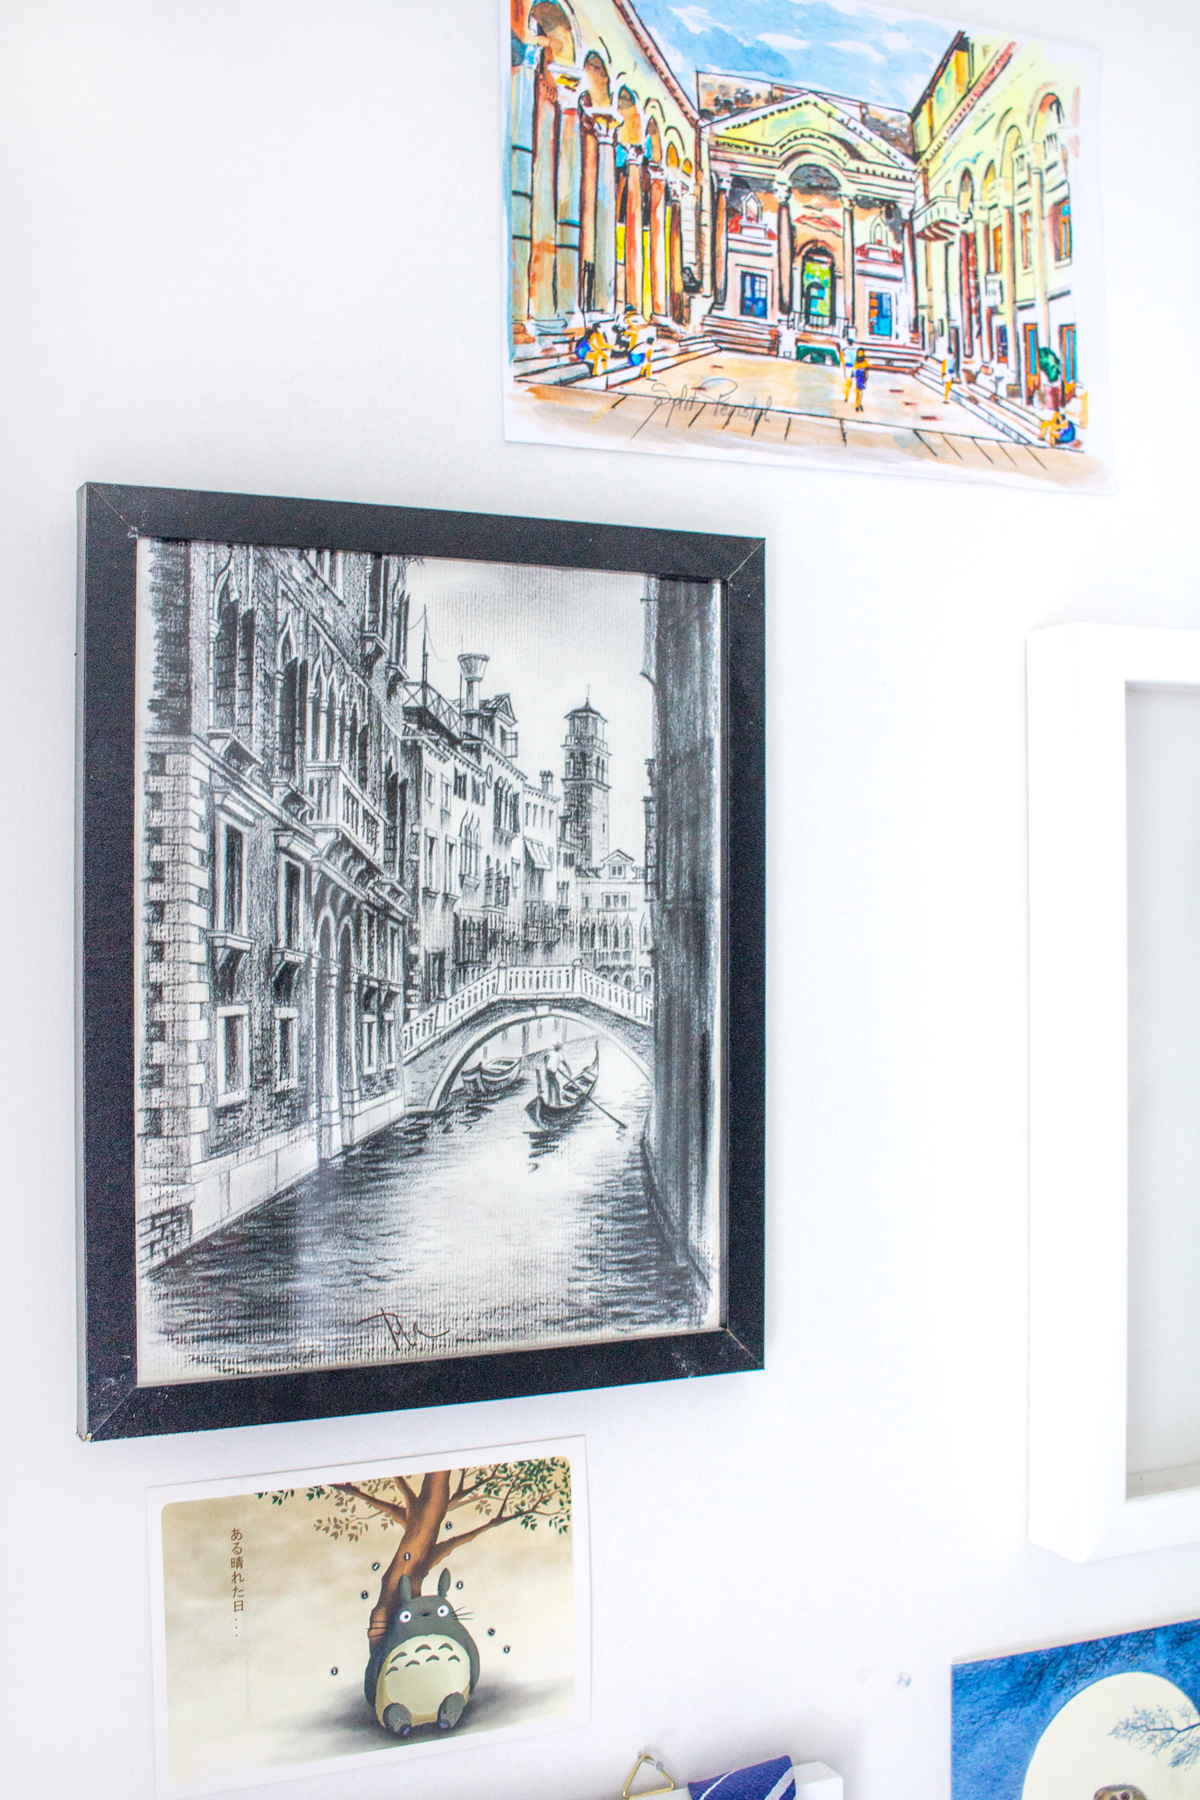 Finding Art to Create Memorable Travel Souvenirs | Venice Canal With Gondola | awaywithkatie.com